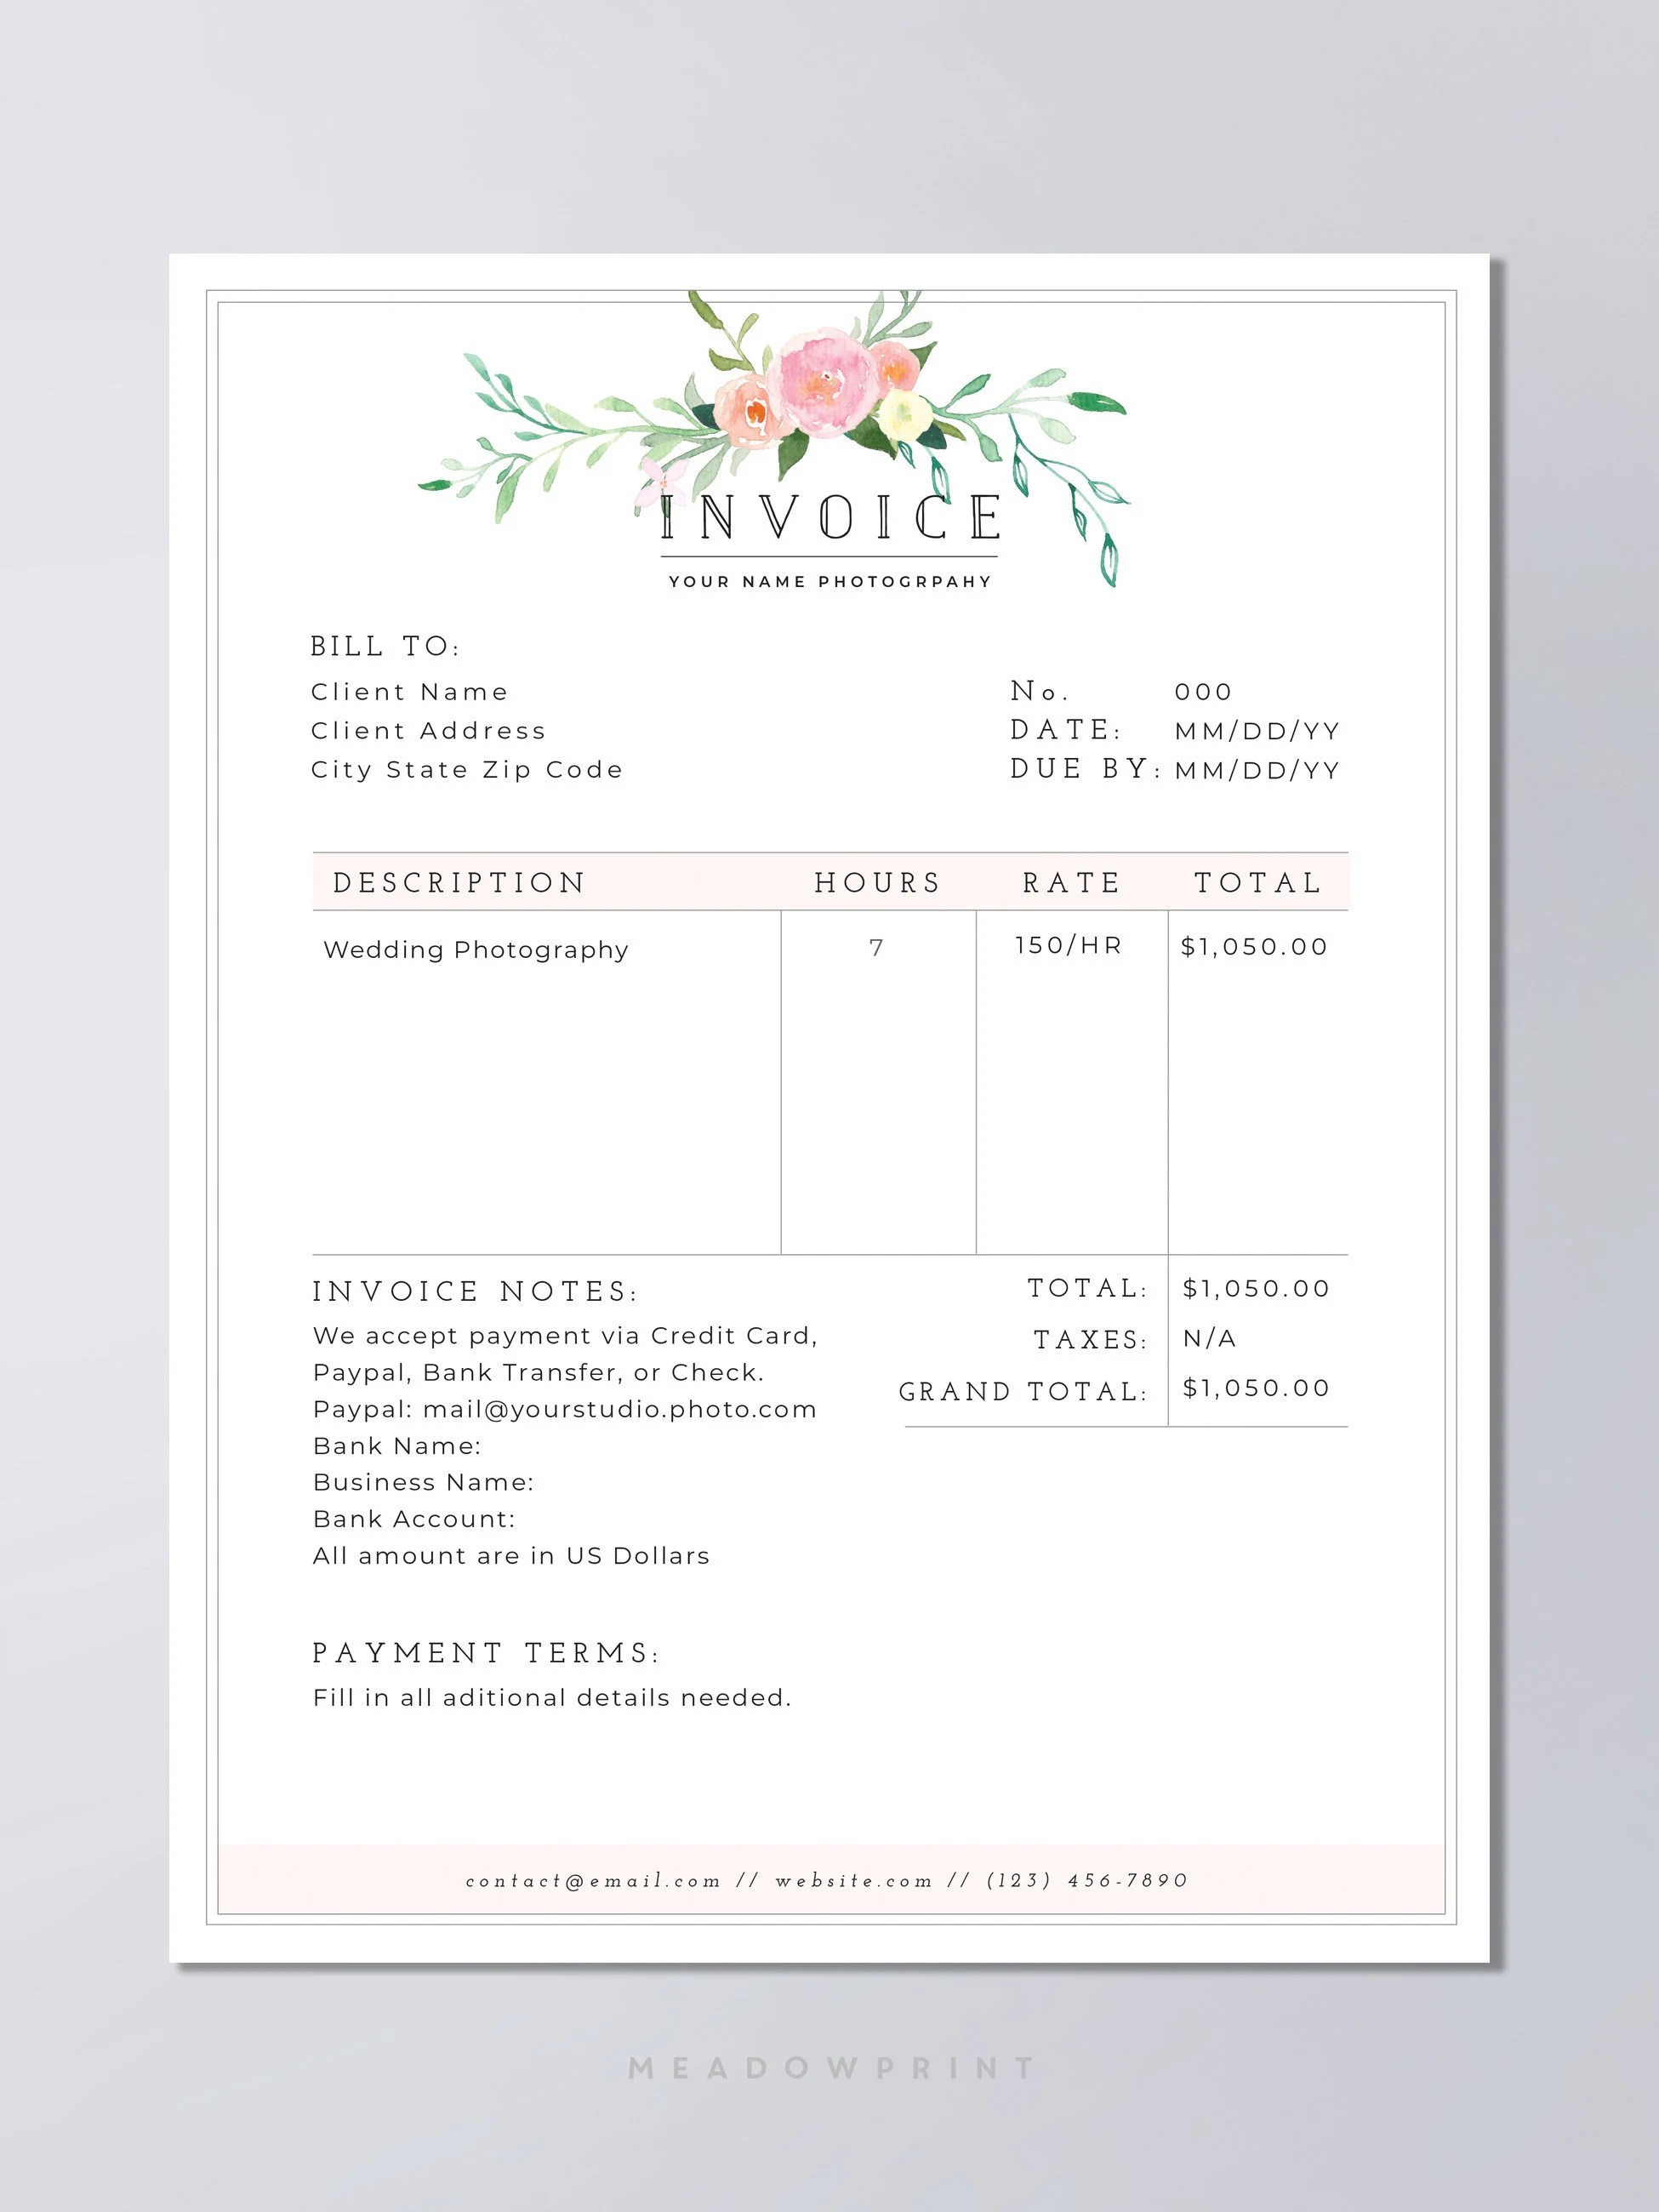 Invoice template | Etsy